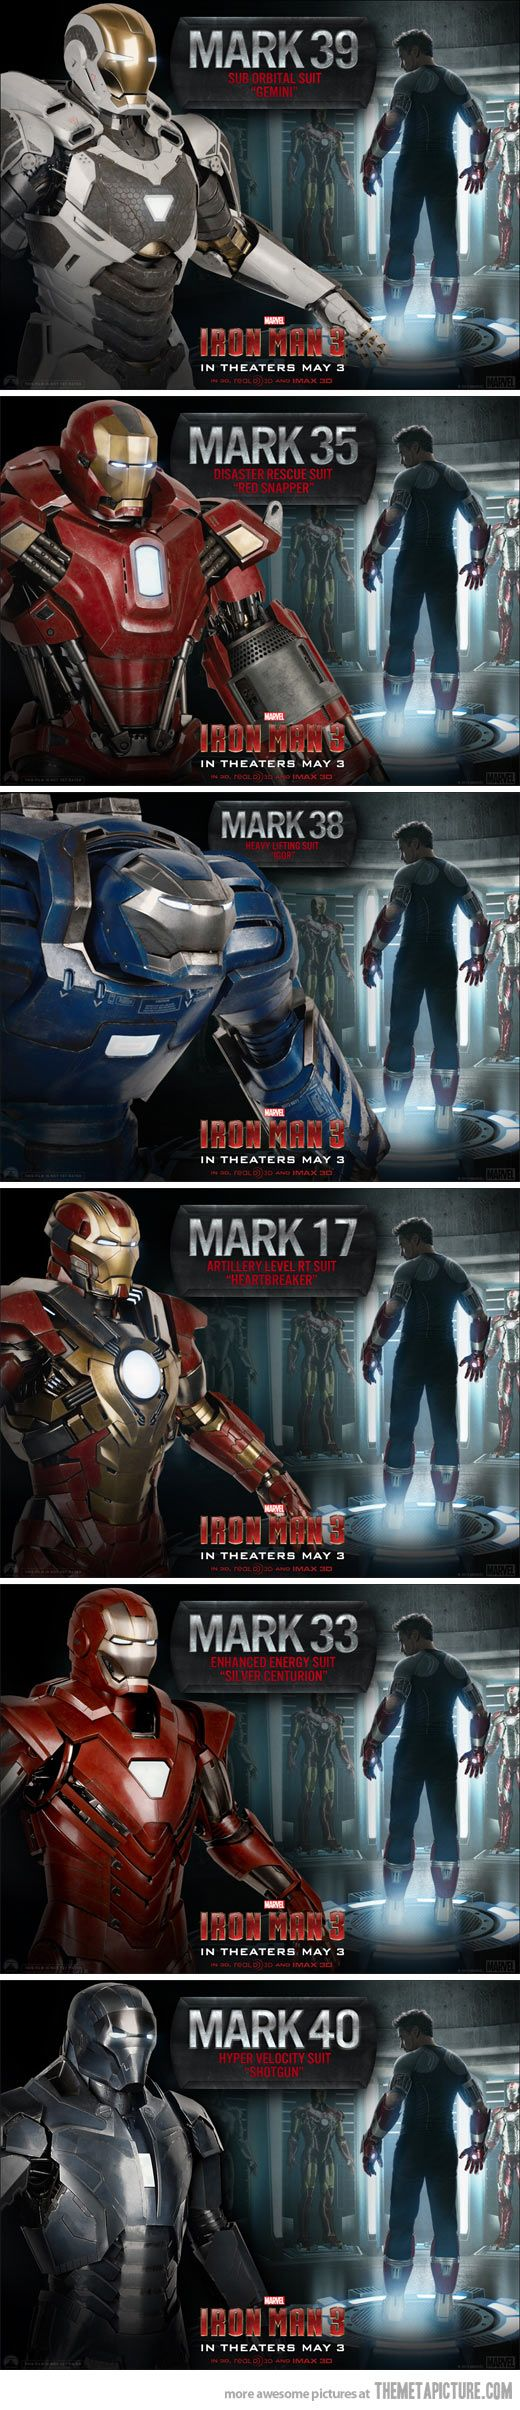 Iron Man 3, all suits unlocked... - The Meta Picture